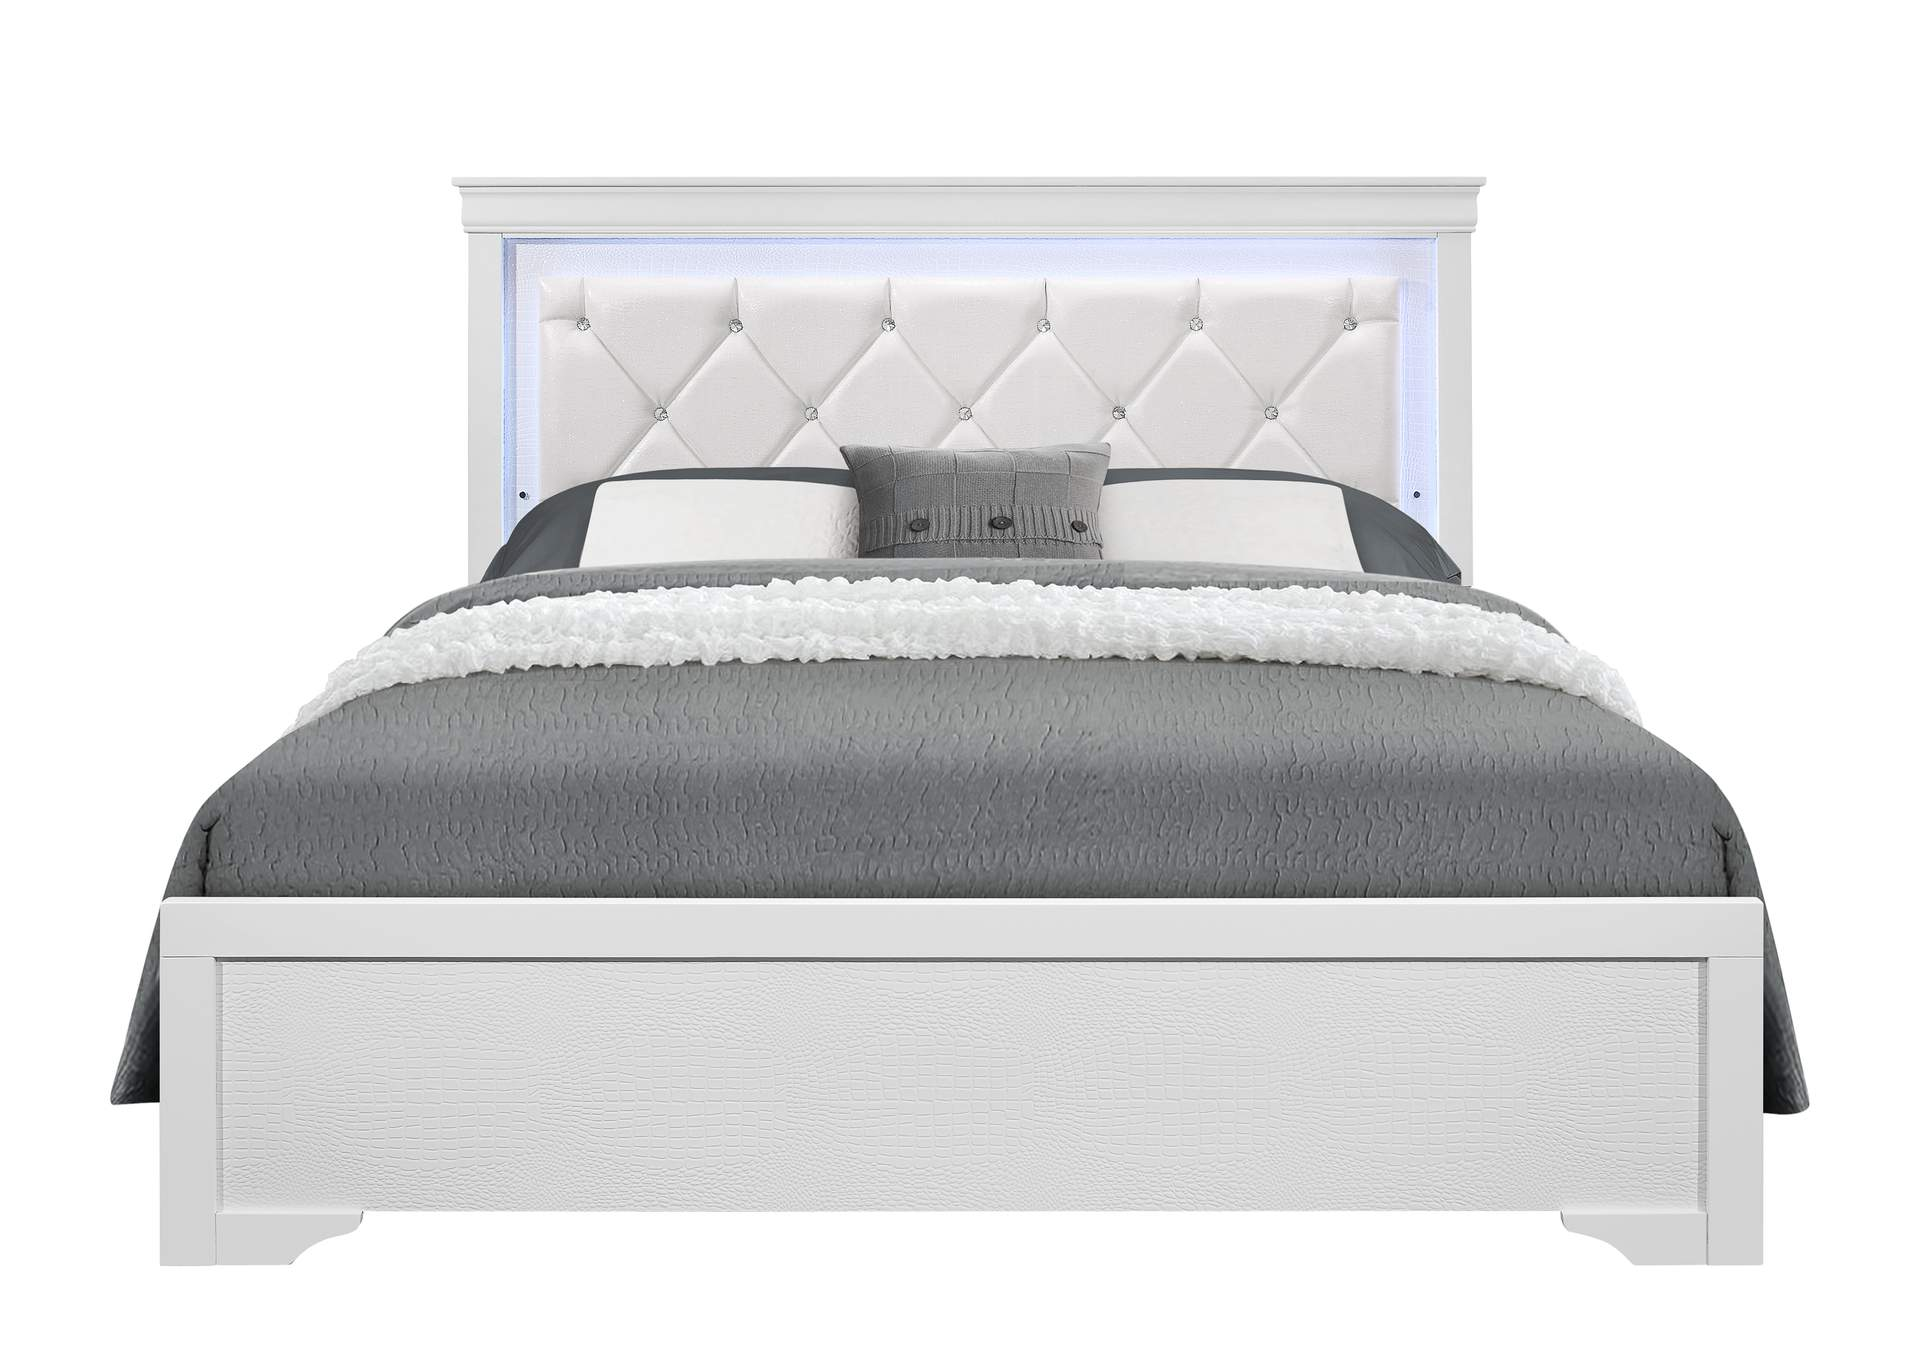 Pompei Metallic White Queen Bed,Global Furniture USA